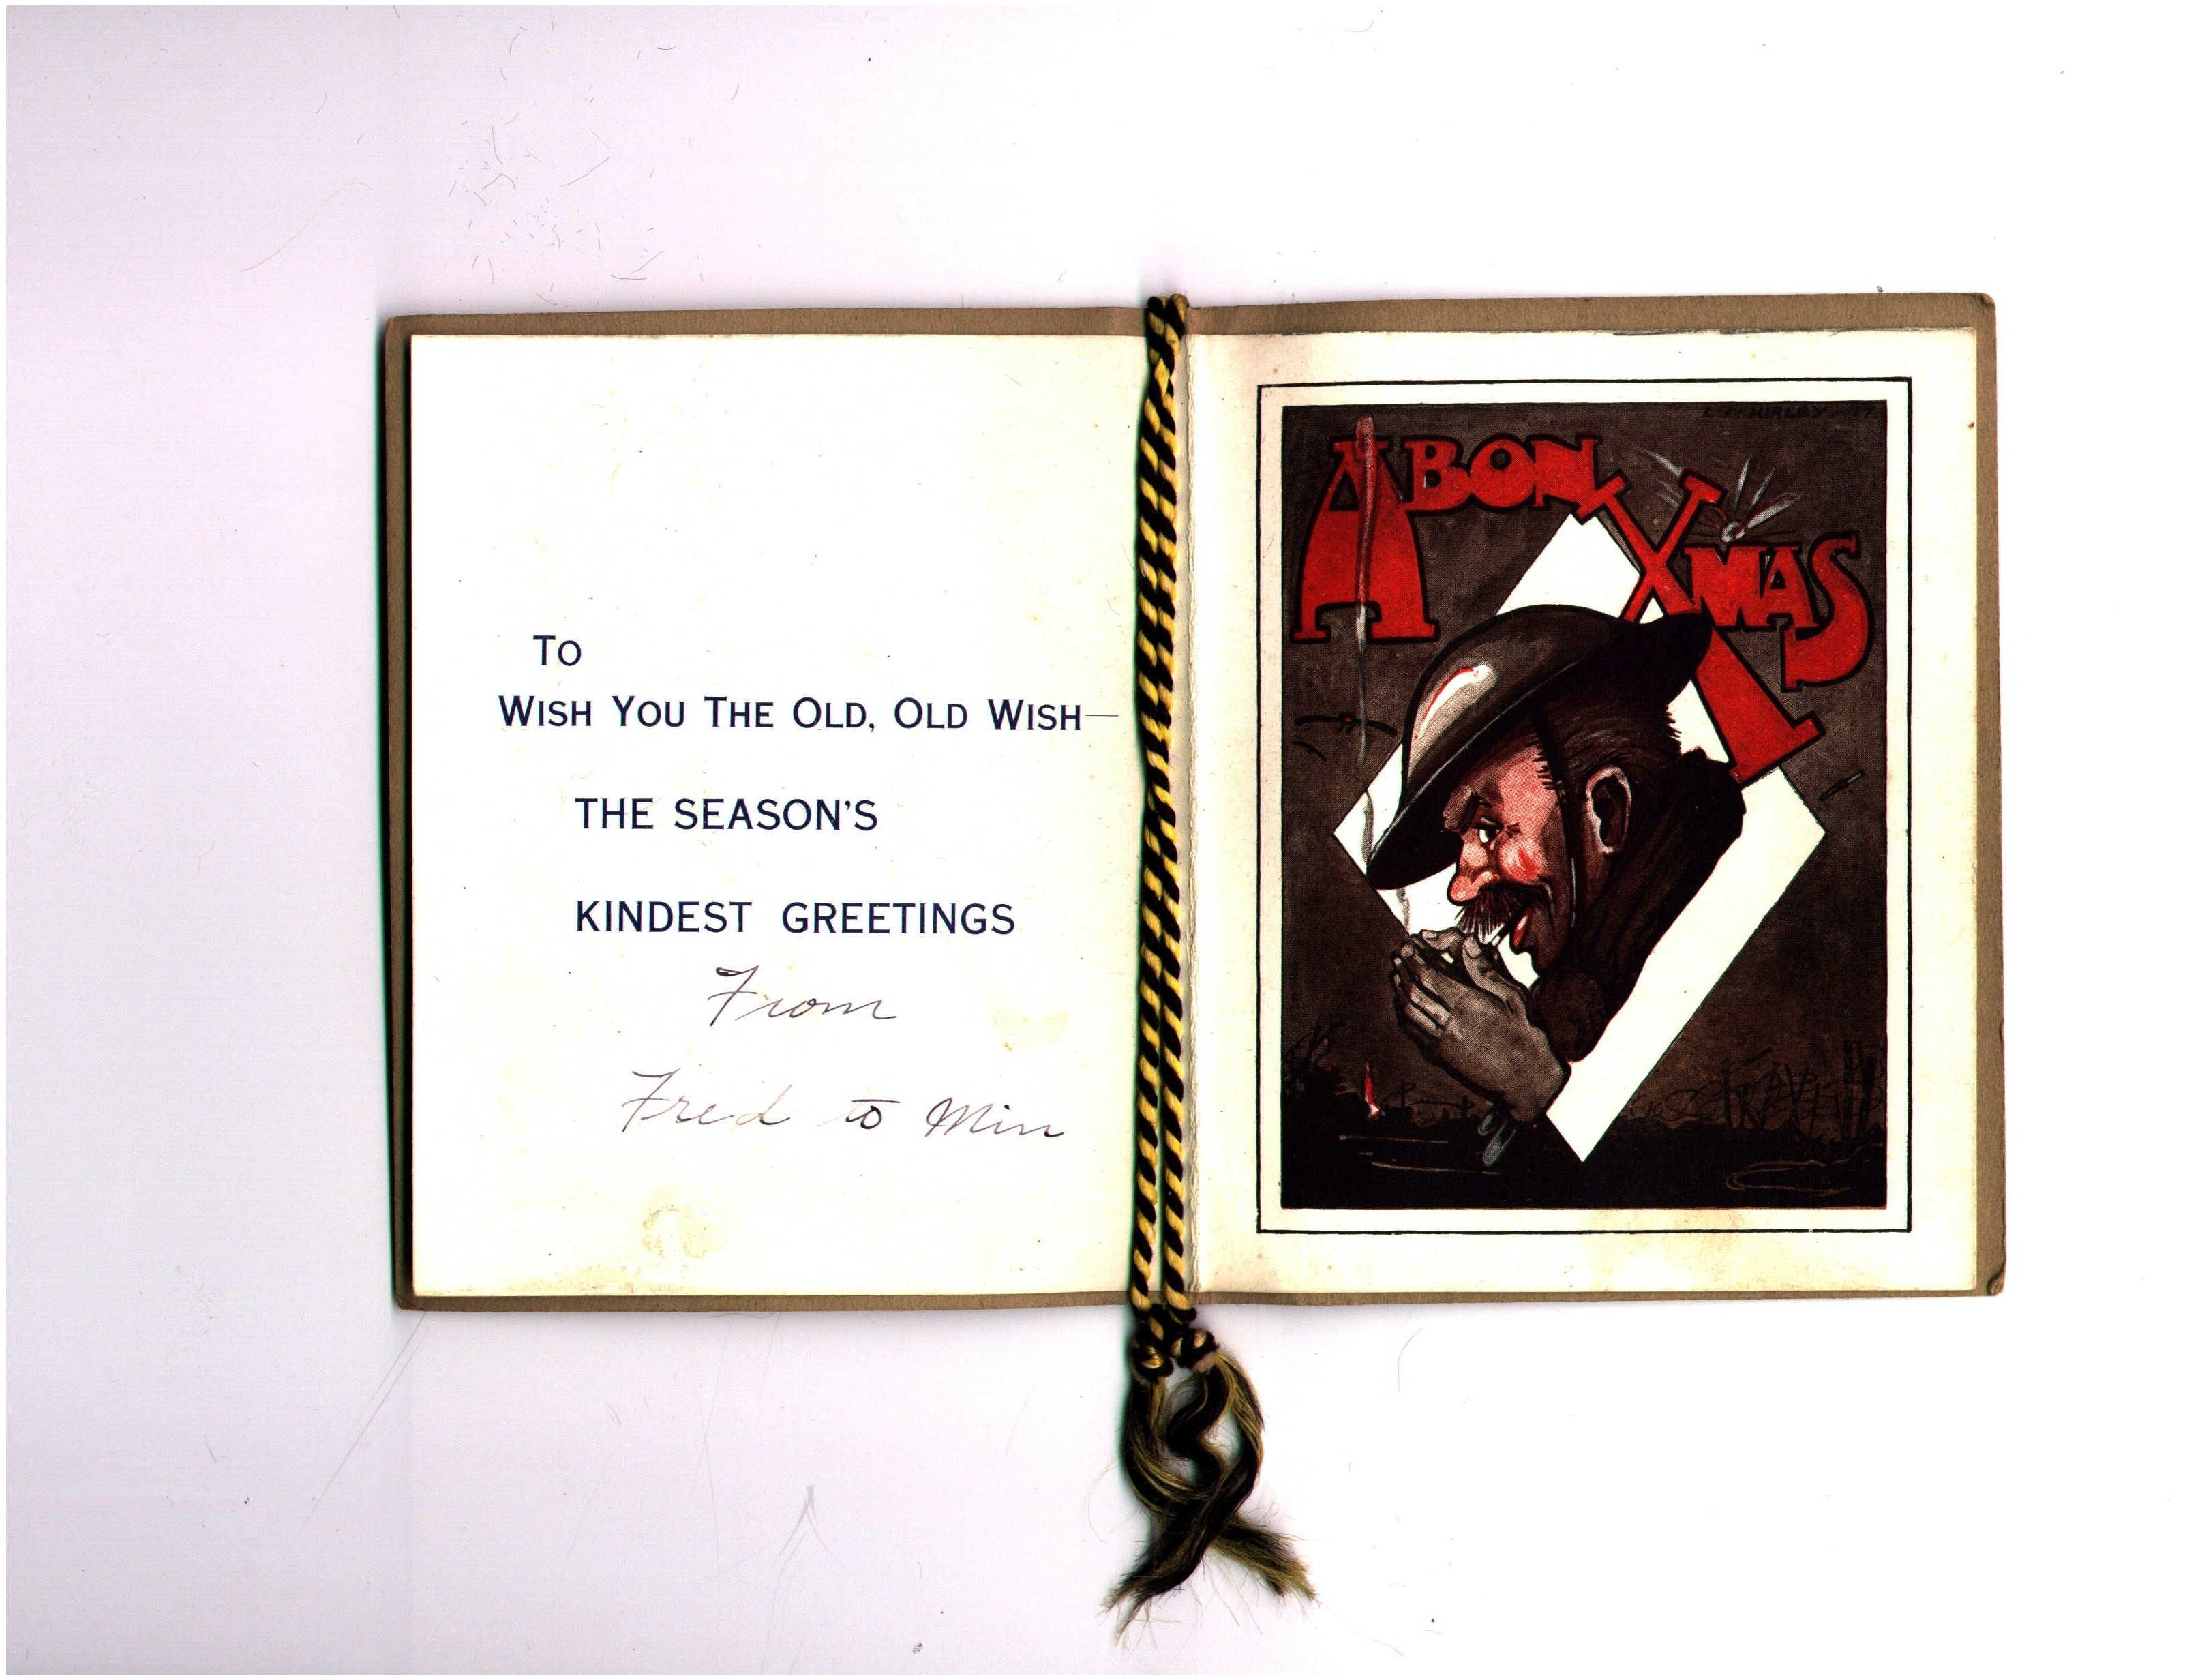 Inside, 19th Battalion Officer's Christmas Card, 1917. The fictional character depicted is Old Bill, the work of cartoonist Bruce Bairnsfather.